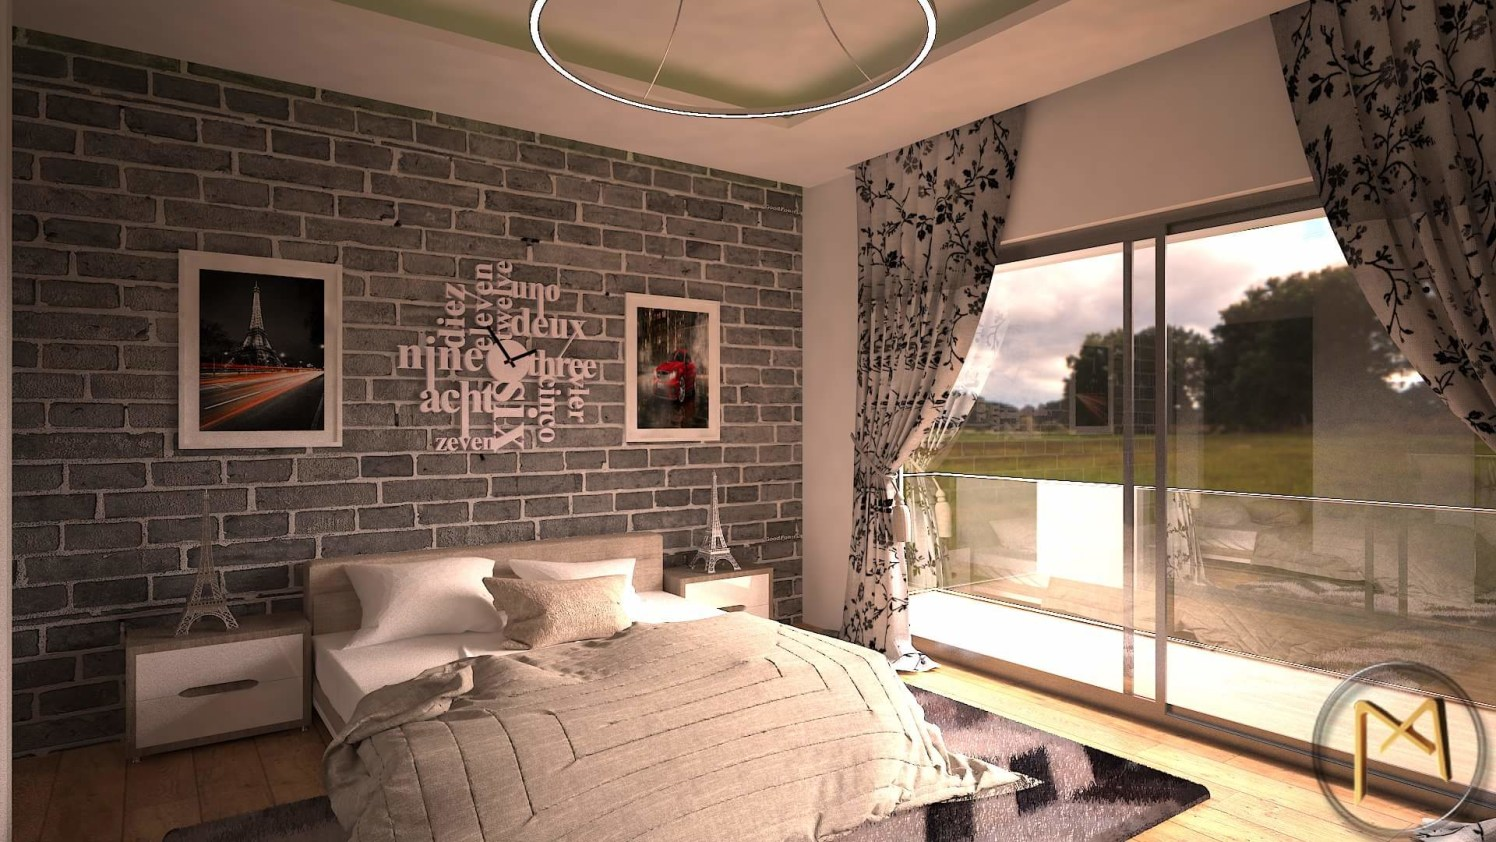 Bed room 3D image by Syed Illias Bedroom Contemporary | Interior Design Photos & Ideas